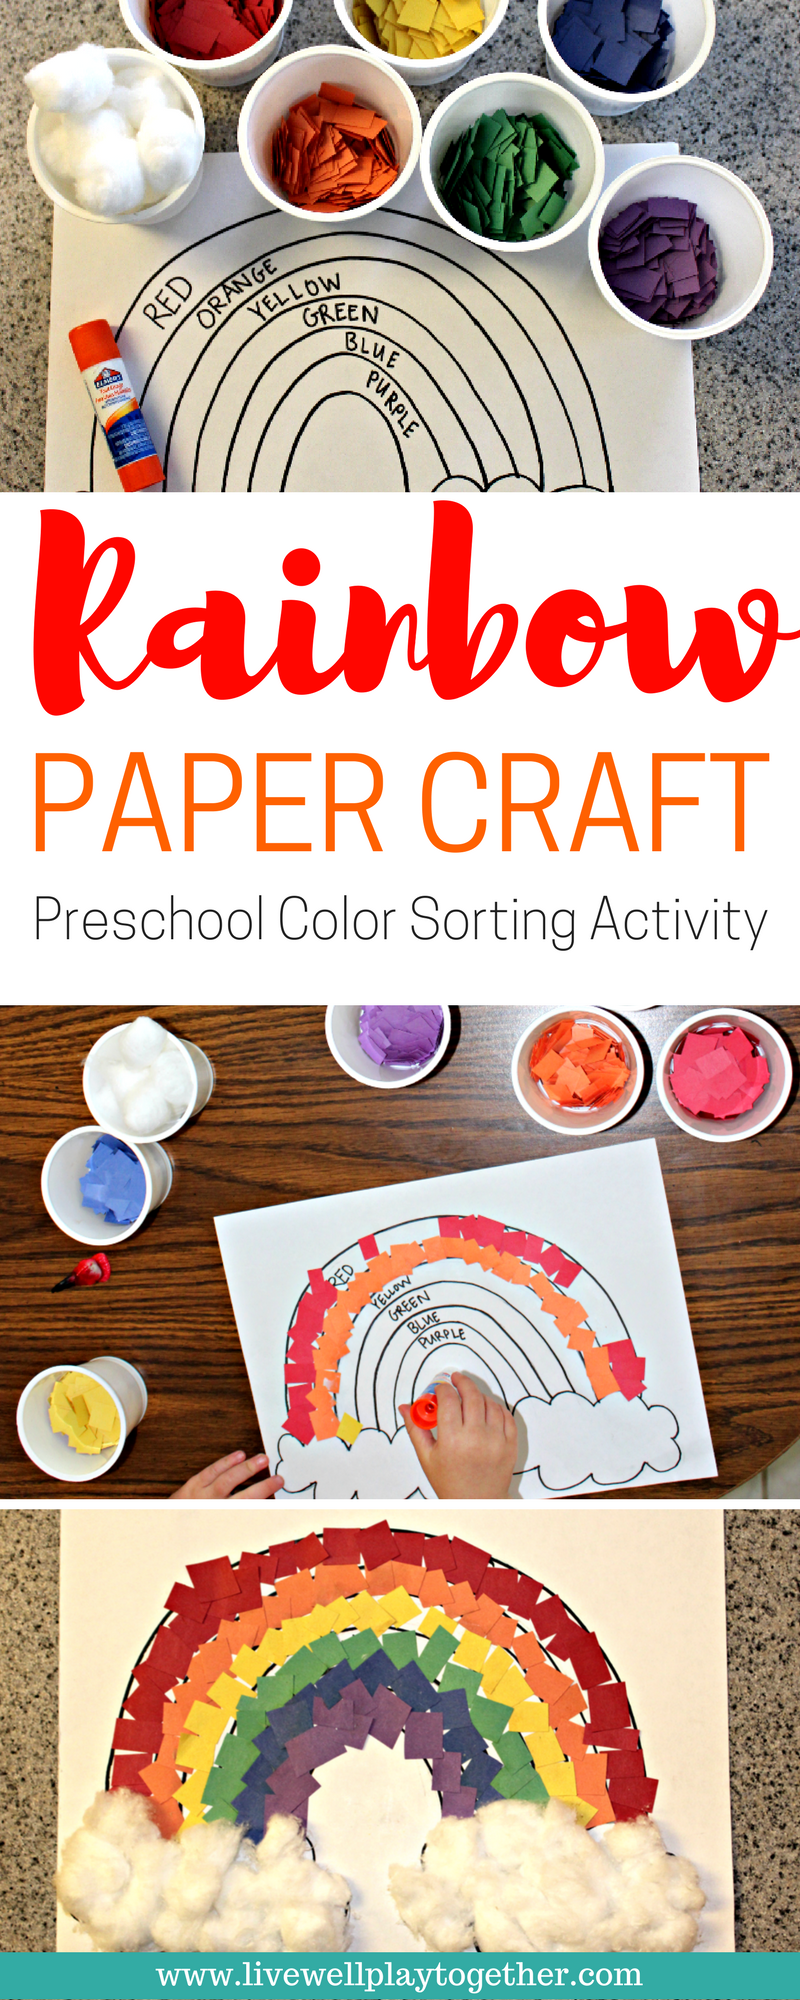 Fun Craft Ideas from livewellplaytogether.com 12